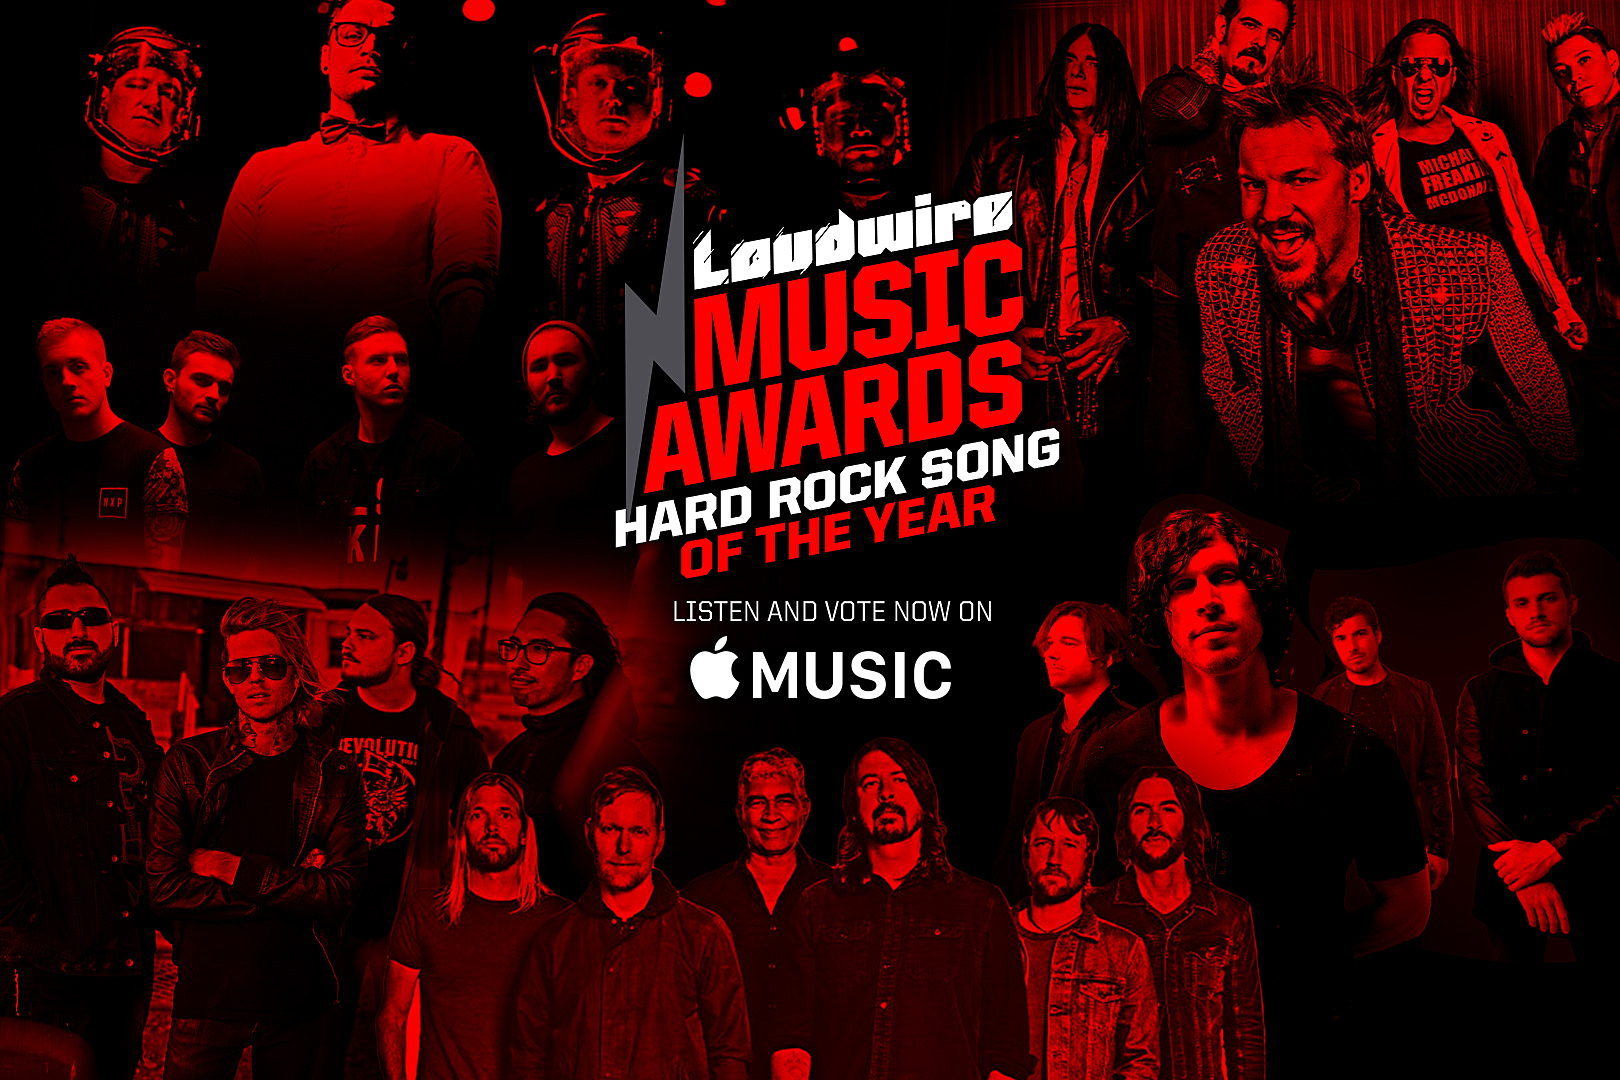 Vote for the Hard Rock Song of the Year – 2017 Loudwire Music Awards